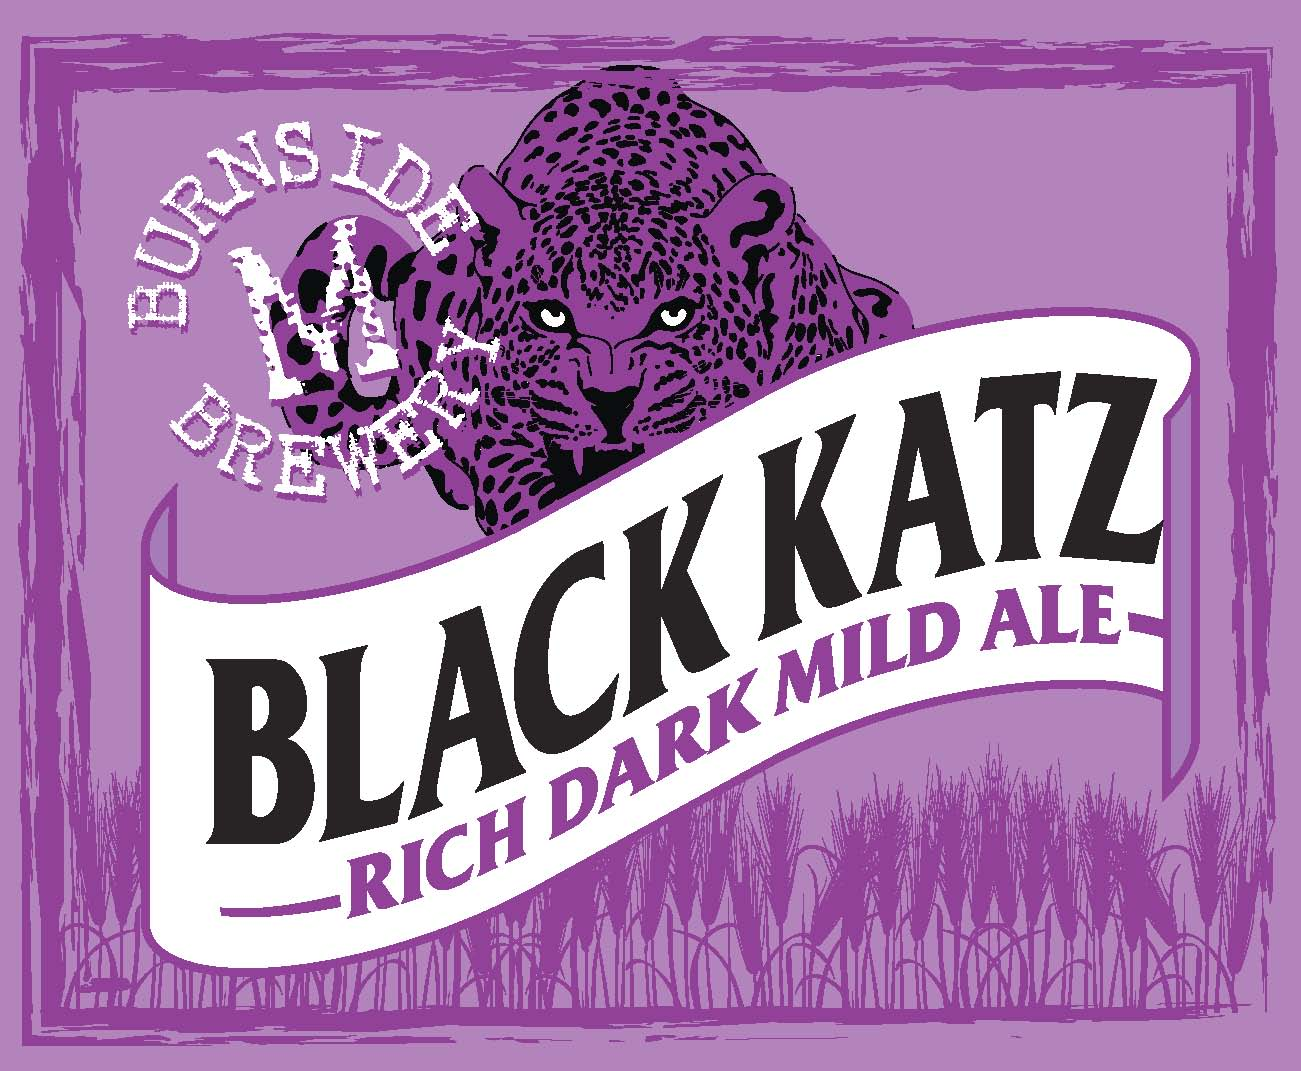 1. BLACK KATZ dark mild ale